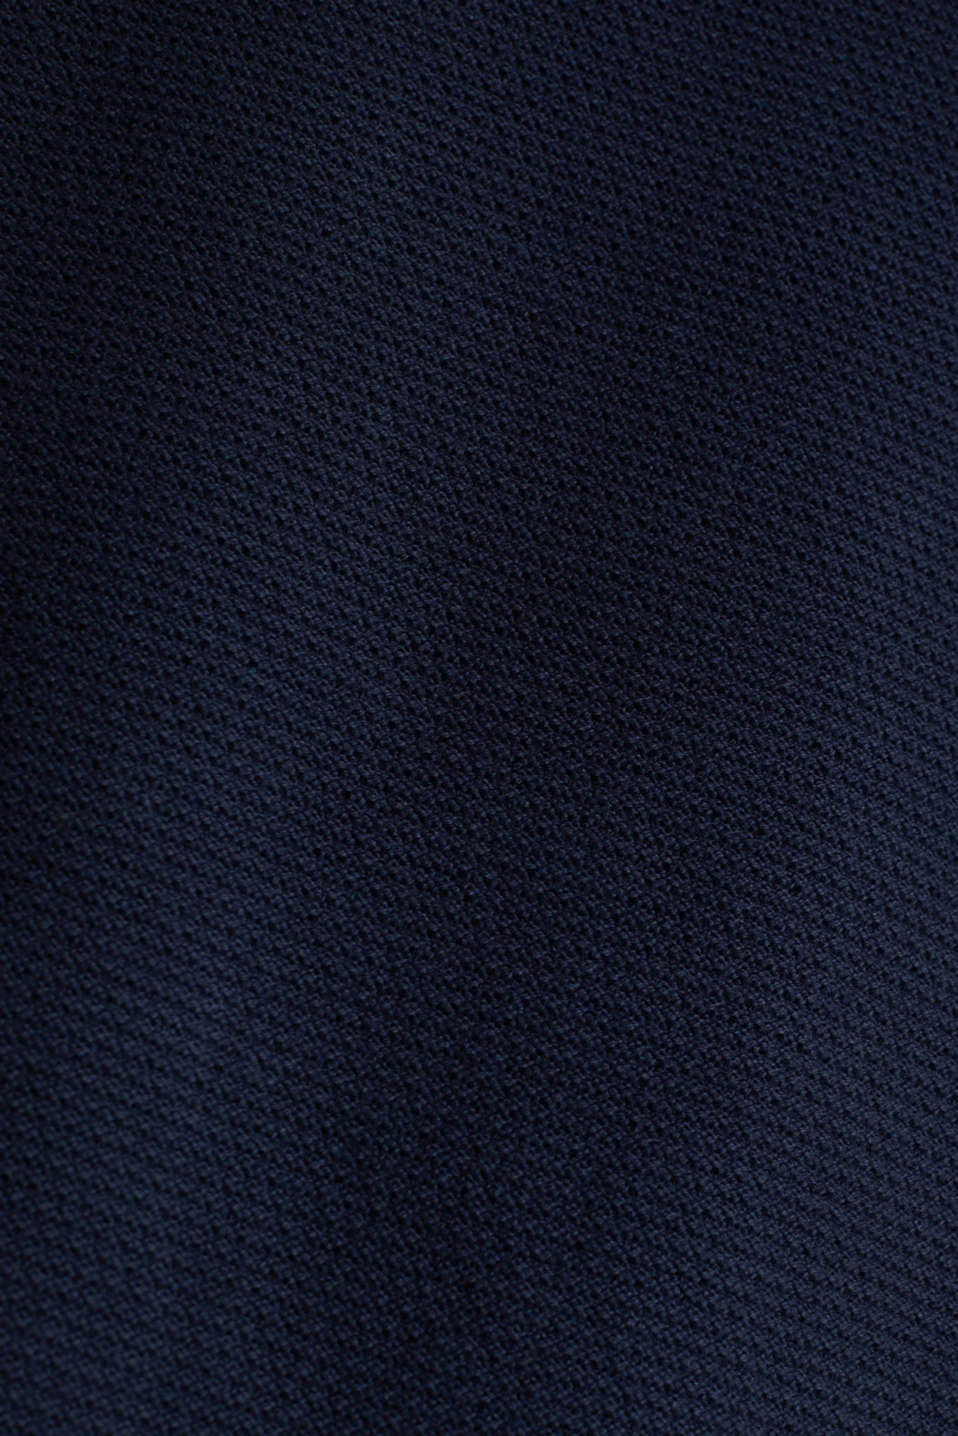 Textured jumper made of 100% cotton, NAVY, detail image number 4